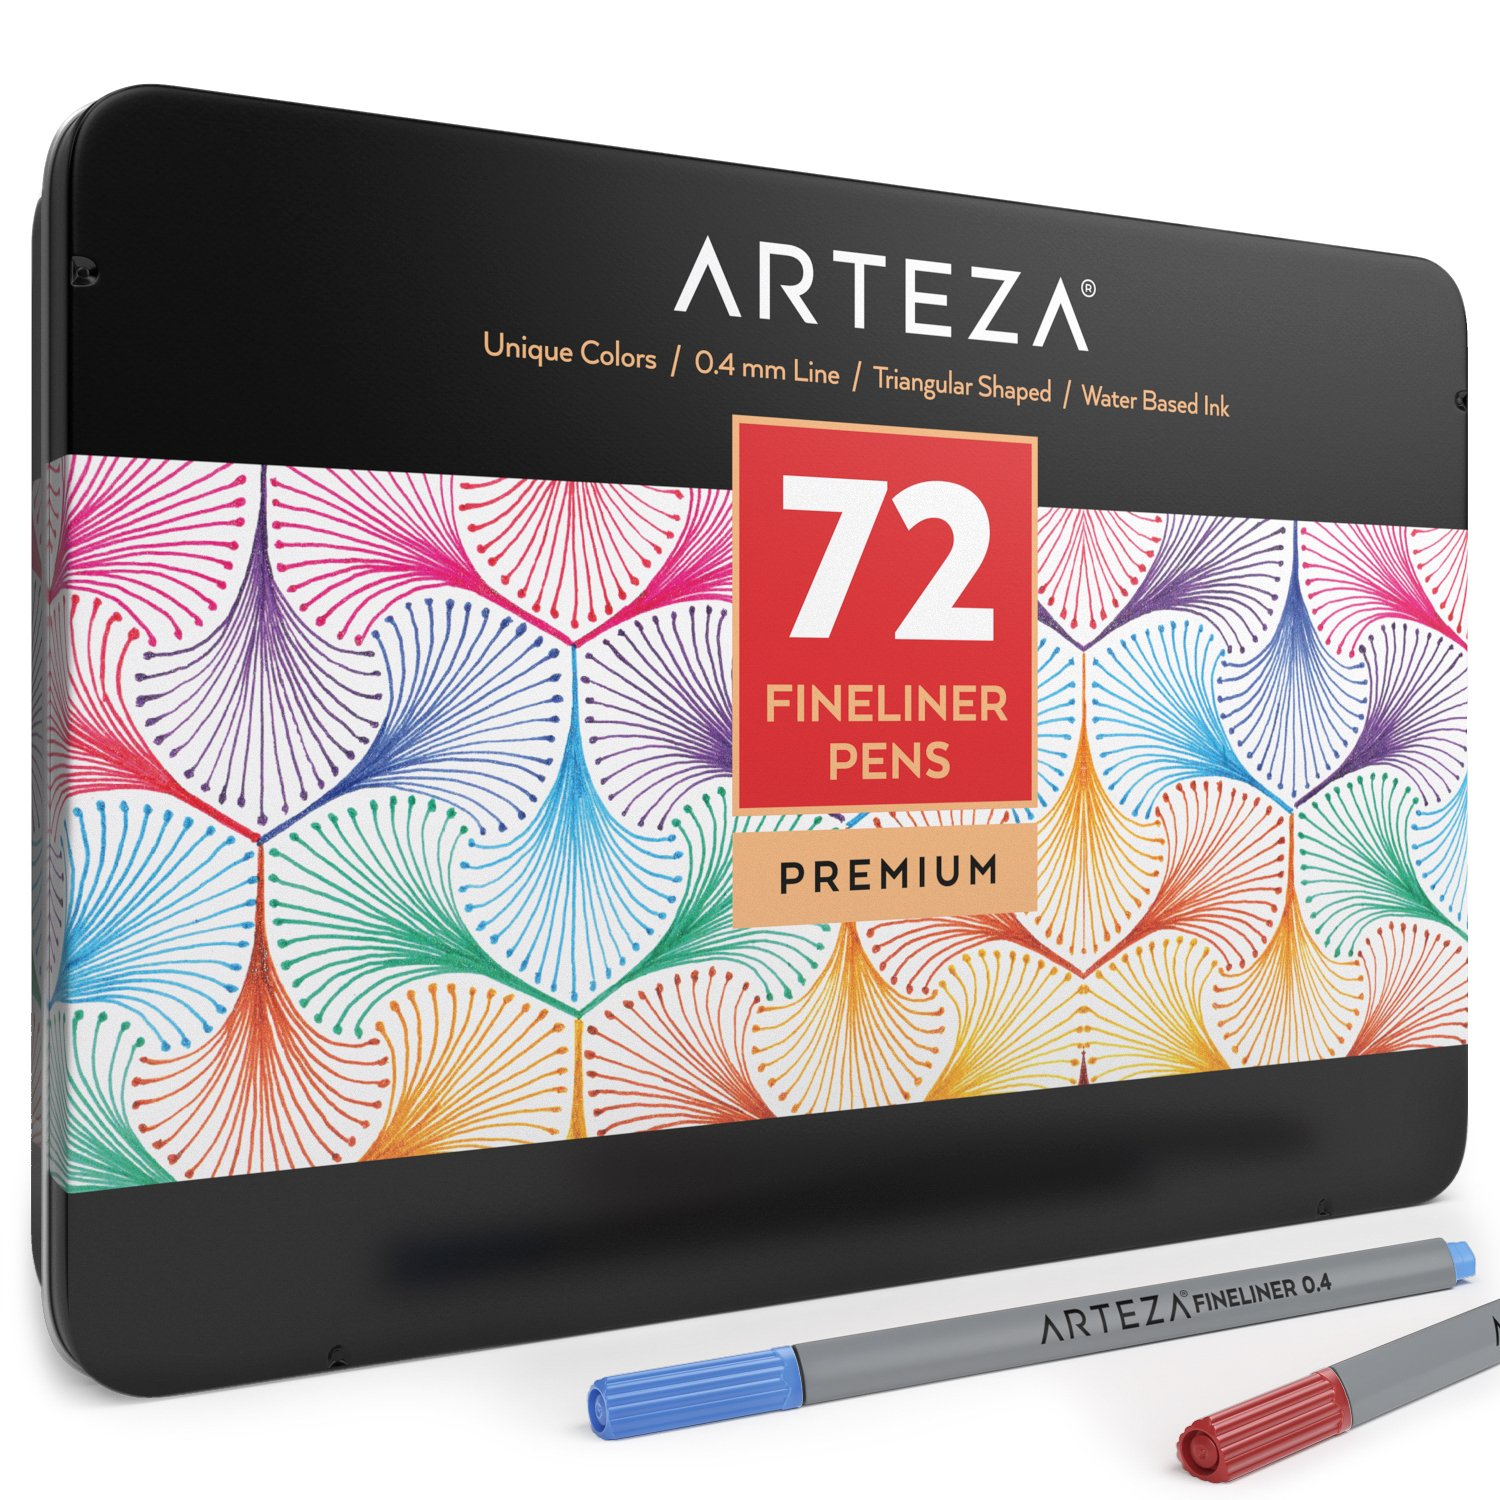 Arteza Fineliners Fine Point Pens, Set of 72 Fine Tip Markers with 0.4mm Tips & Sure Grip Ergonomic Barrels, Brilliant Assorted Colors for Coloring, Drawing & Detailing + Sturdy Metal Storage Case ARTZ-8103